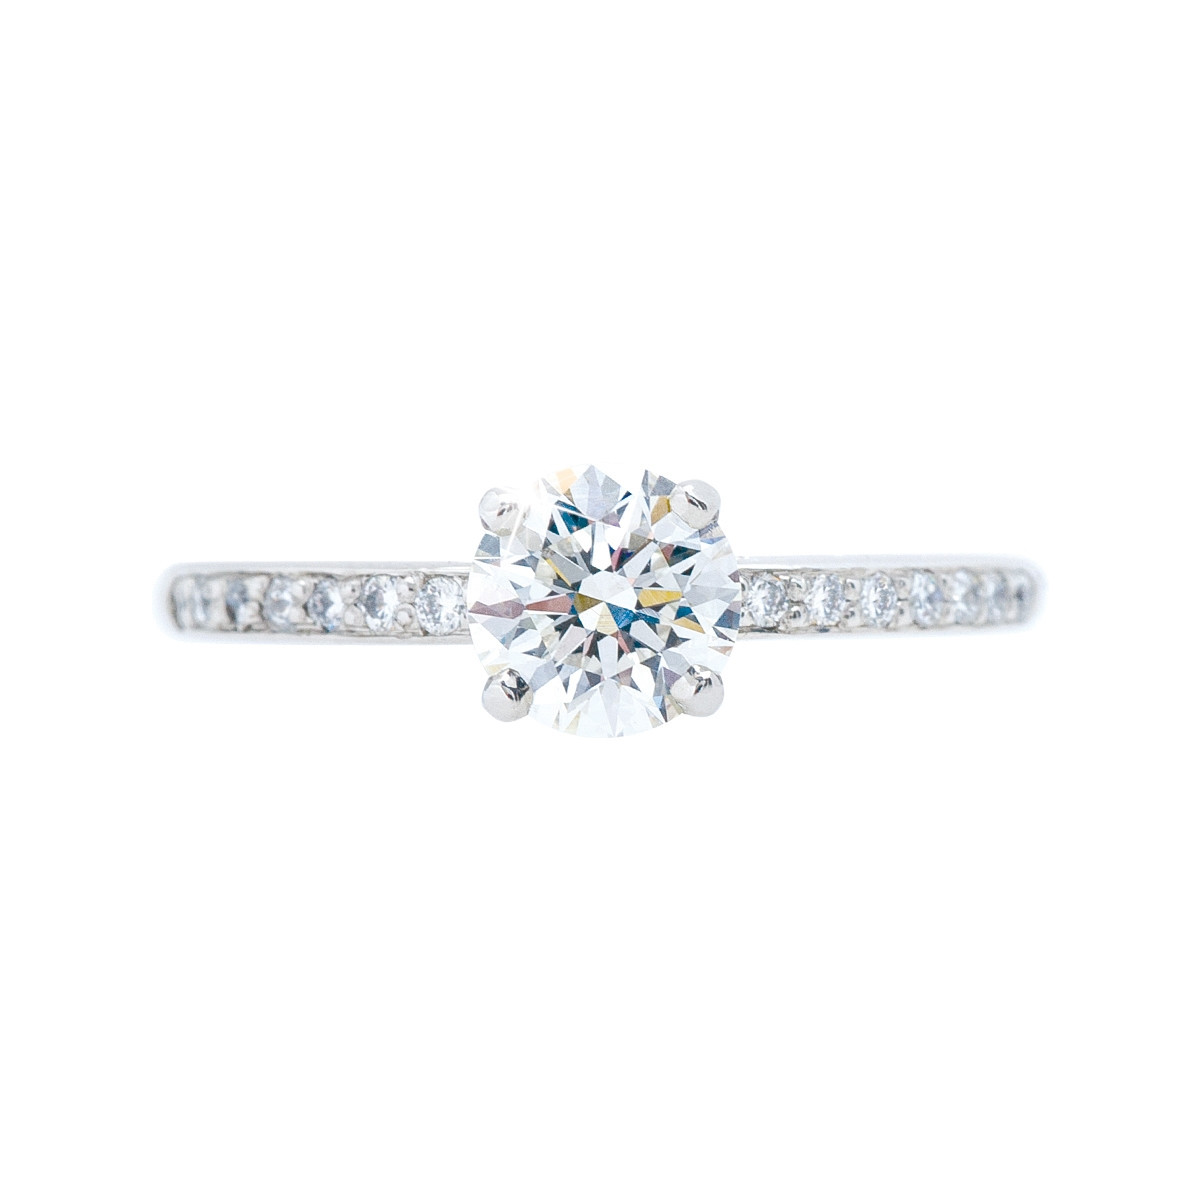 the properties of being ____ make a diamond a gemstone Vintage 0.84 CTW Diamond Engagement Ring - Shop Jewelry - Shop ...